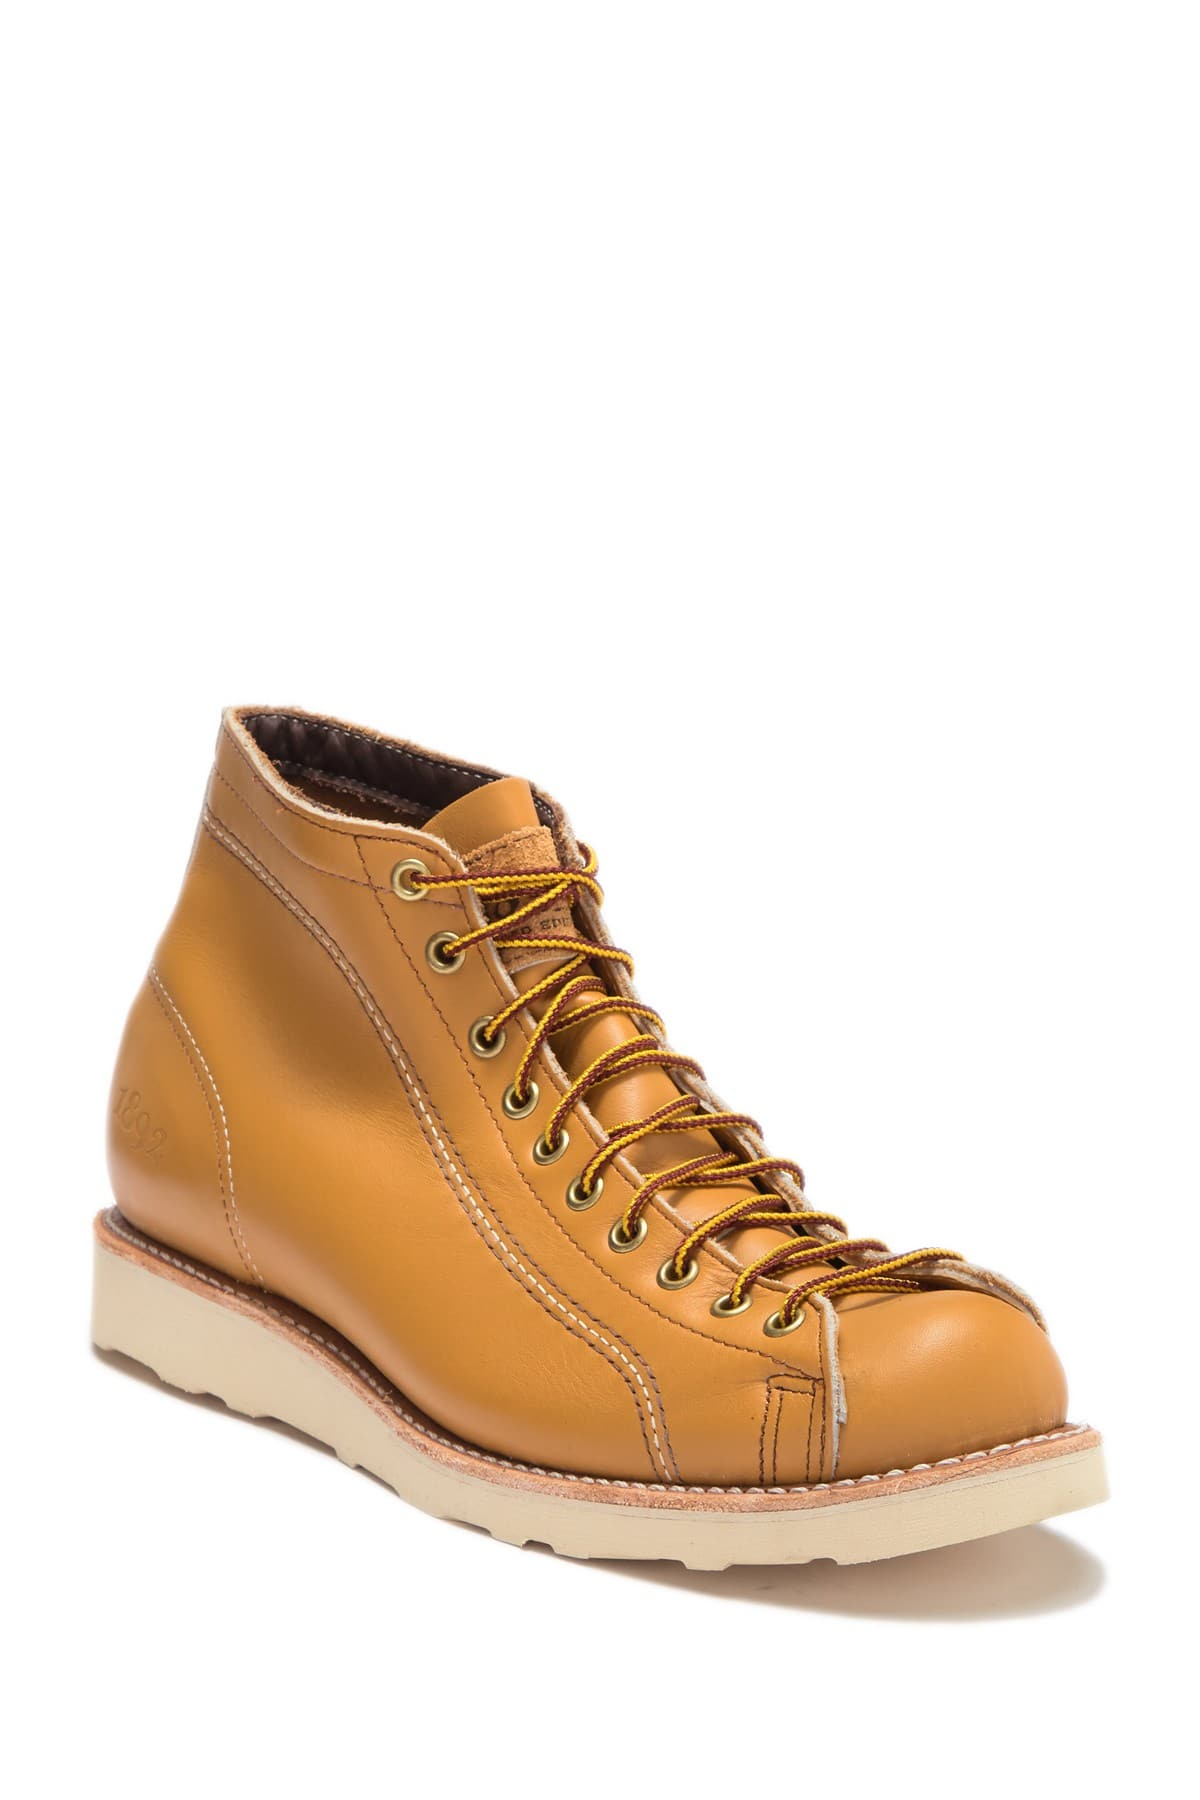 b7a76c310c4 Thorogood Roofer 1892 Portage Leather Boot - Mustard - $99.99 ...